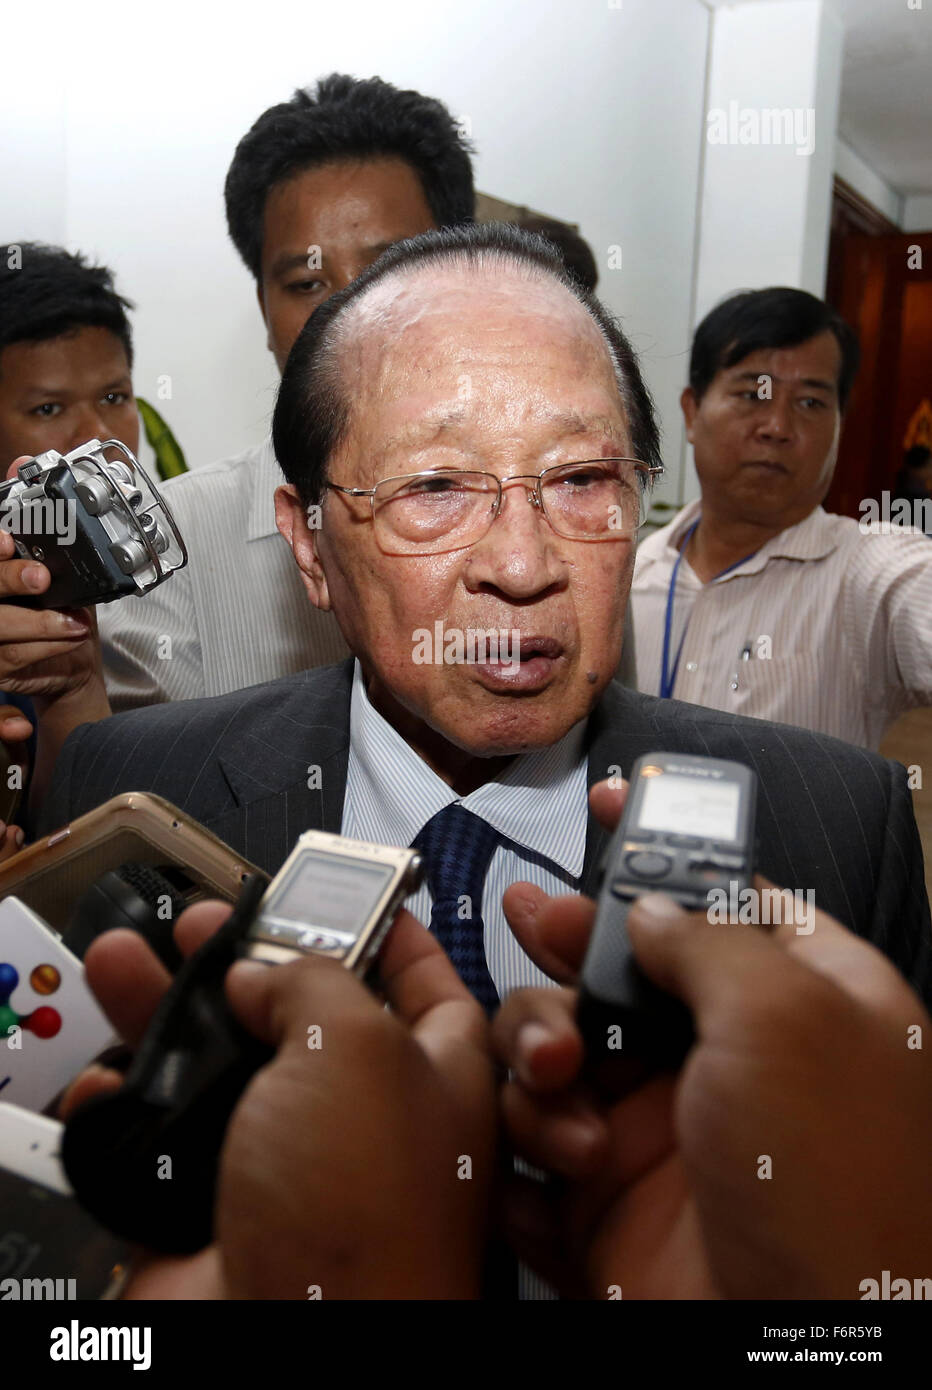 Phnom Penh, Cambodia. 19th Nov, 2015. Cambodian Deputy Prime Minister and Foreign Minister Hor Namhong (C) speaks - Stock Image